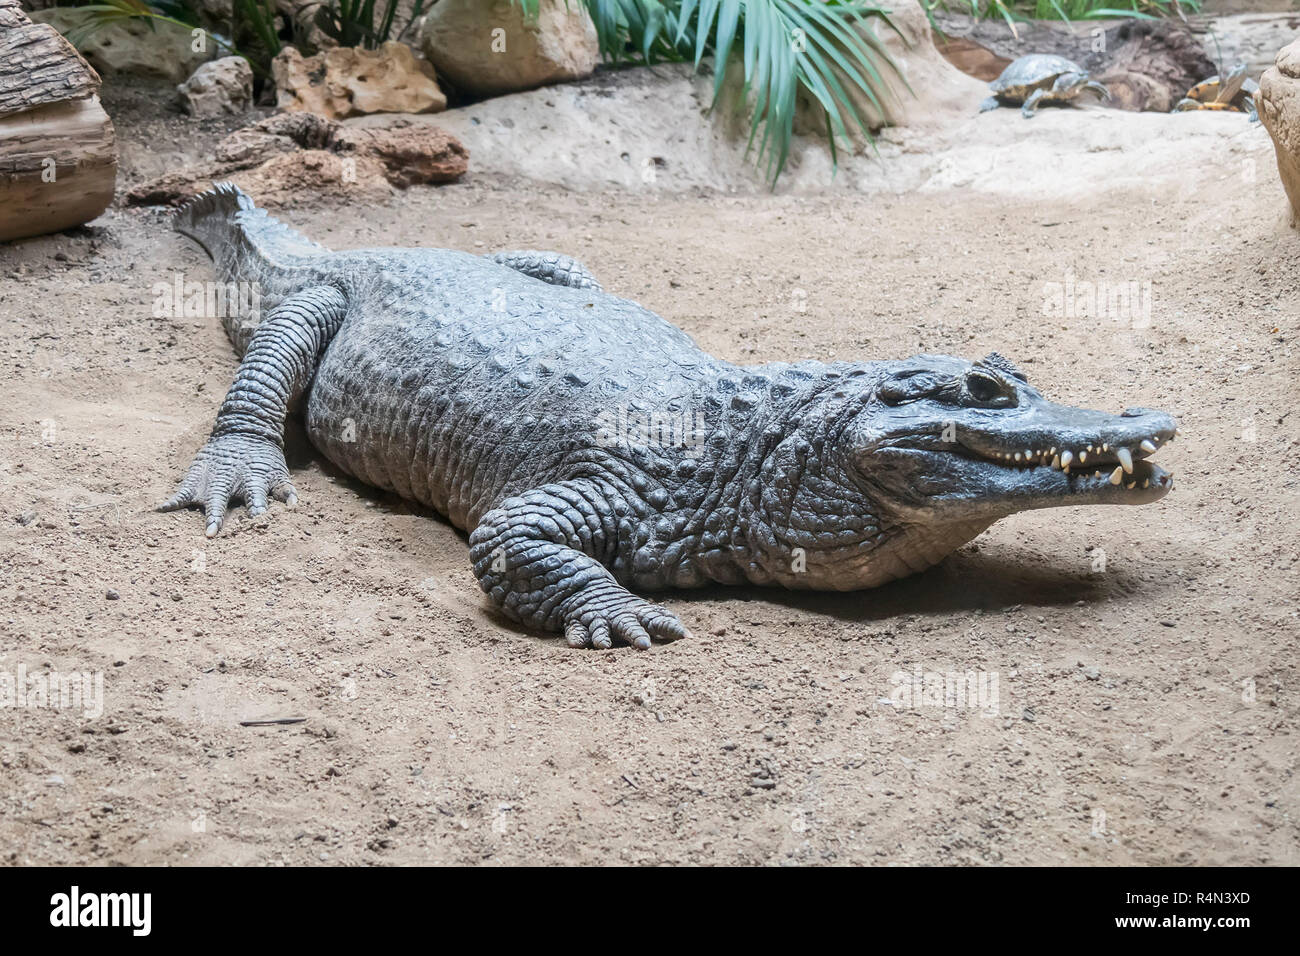 Yacare Caiman staying still on the sand - Stock Image